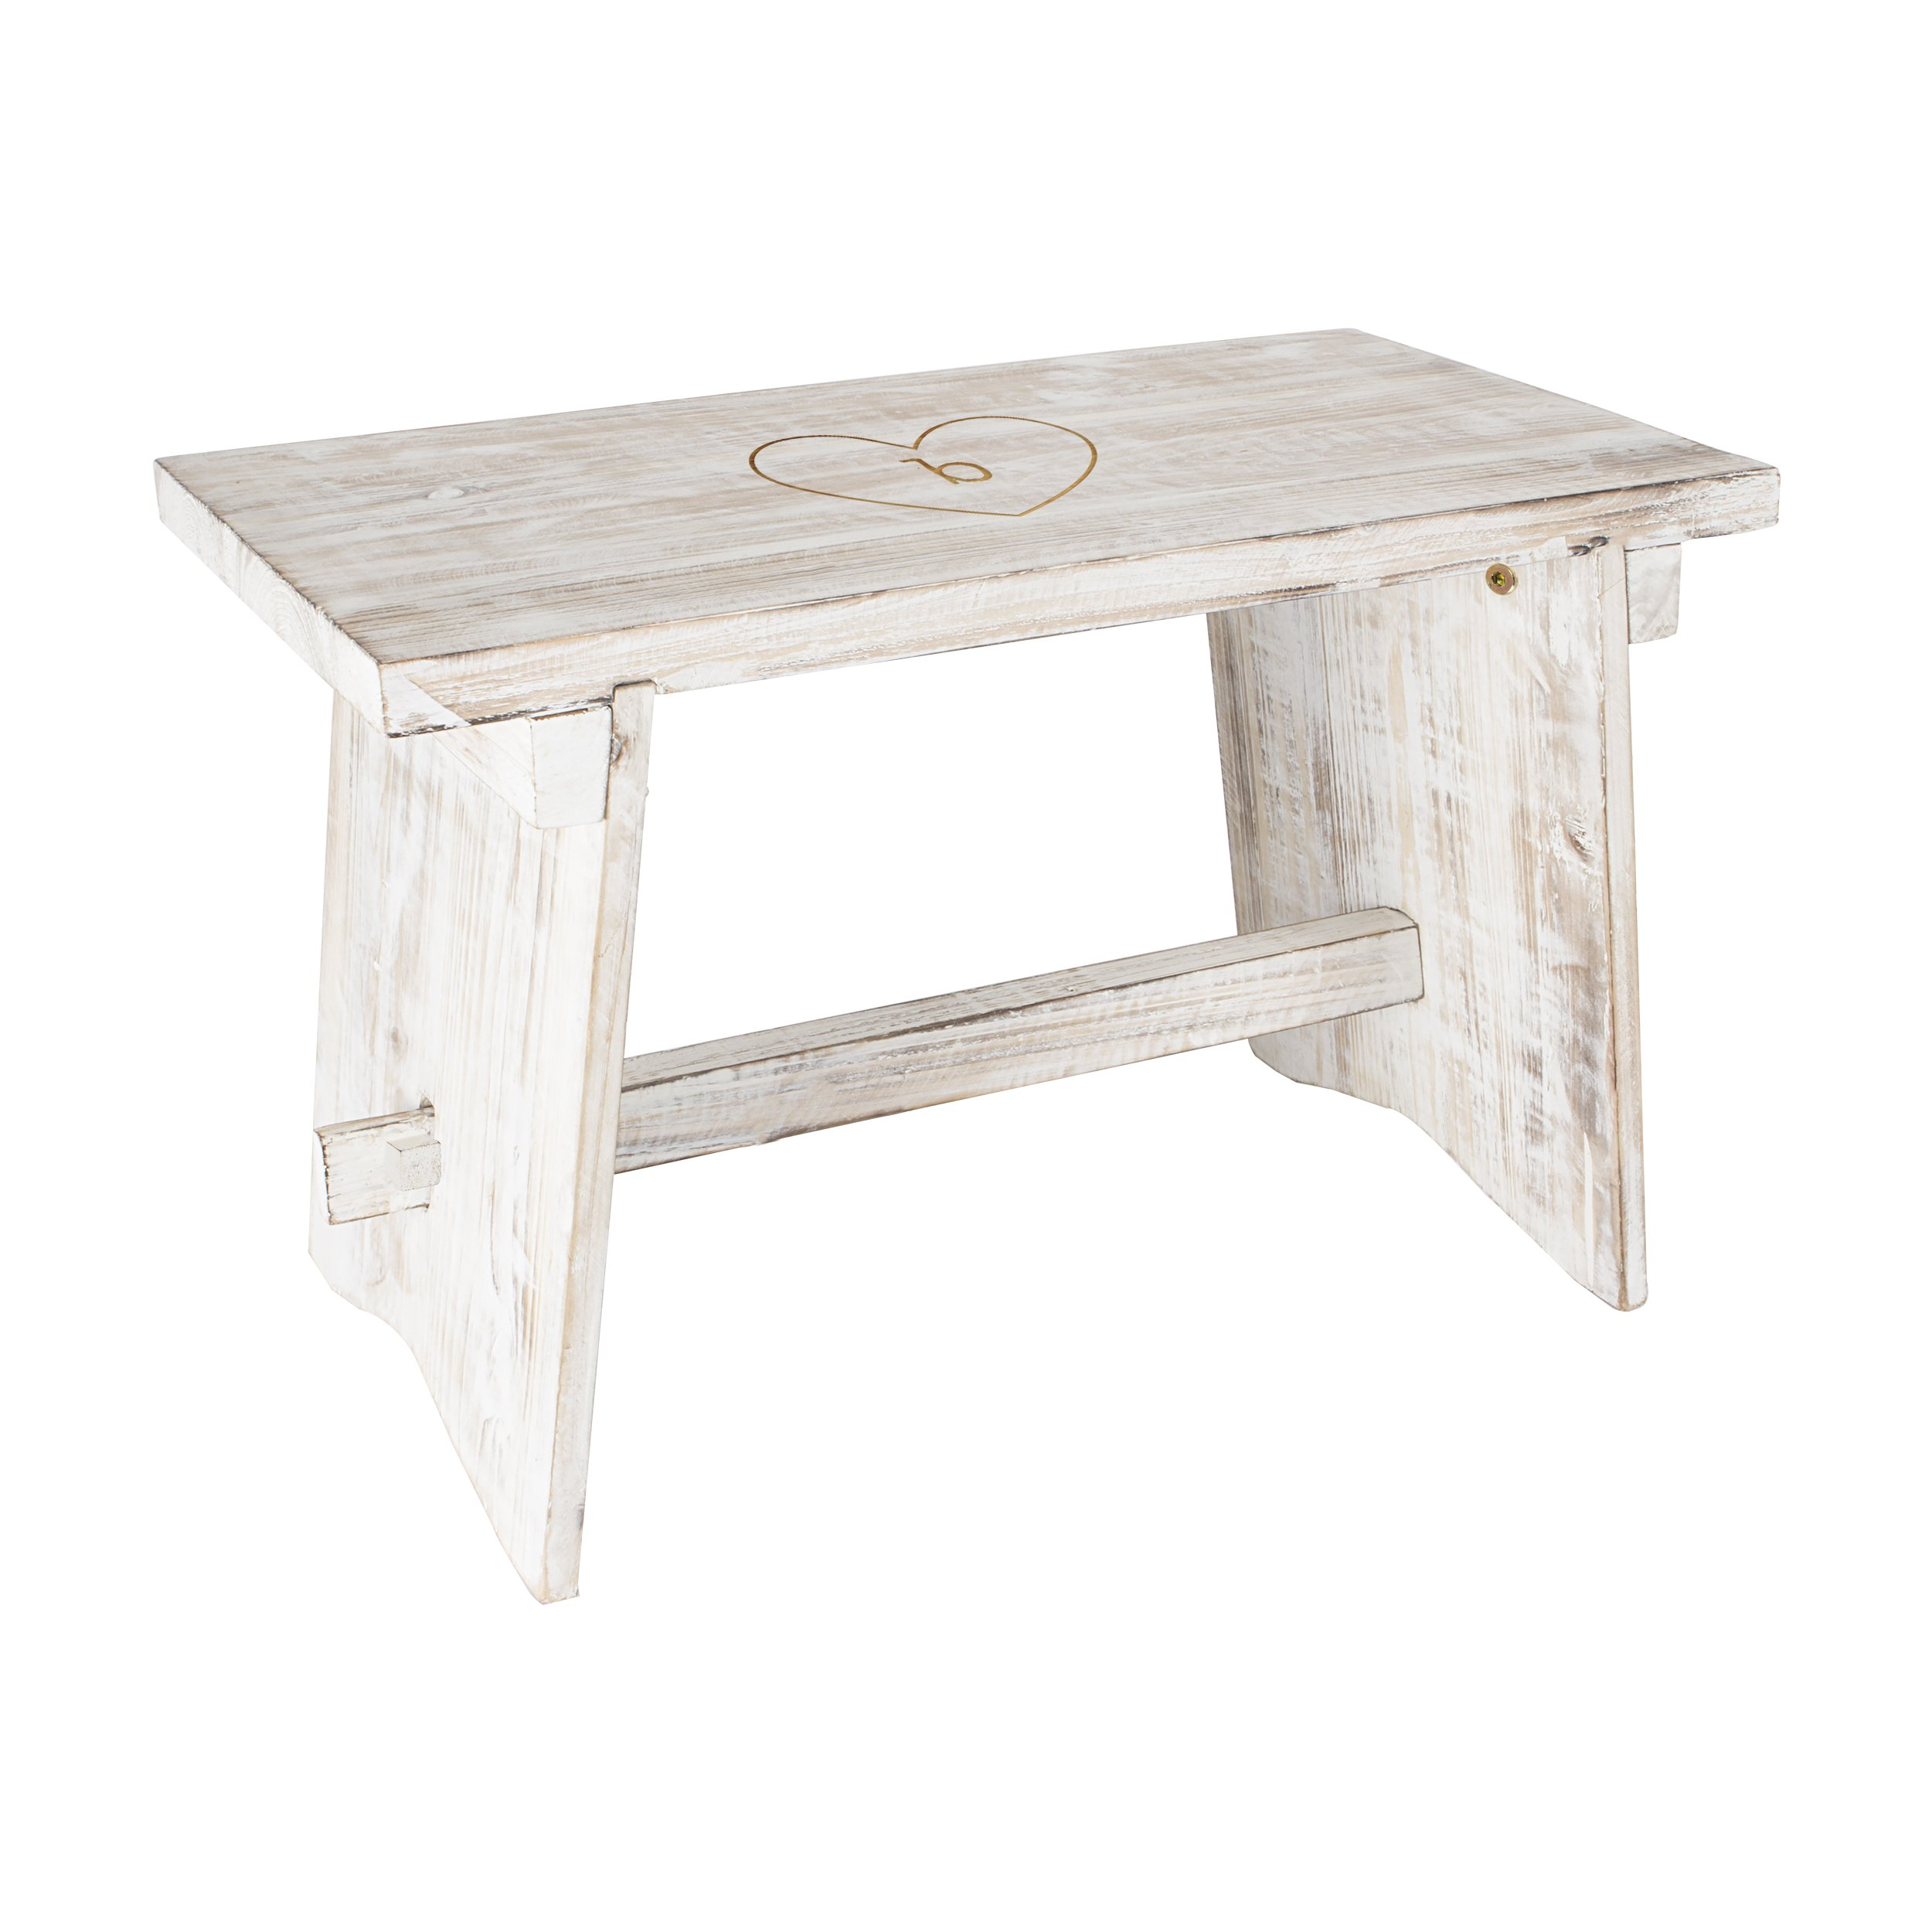 Cathy's Concepts HRT-3950-B Personalized Heart Rustic Wooden Guestbook Bench